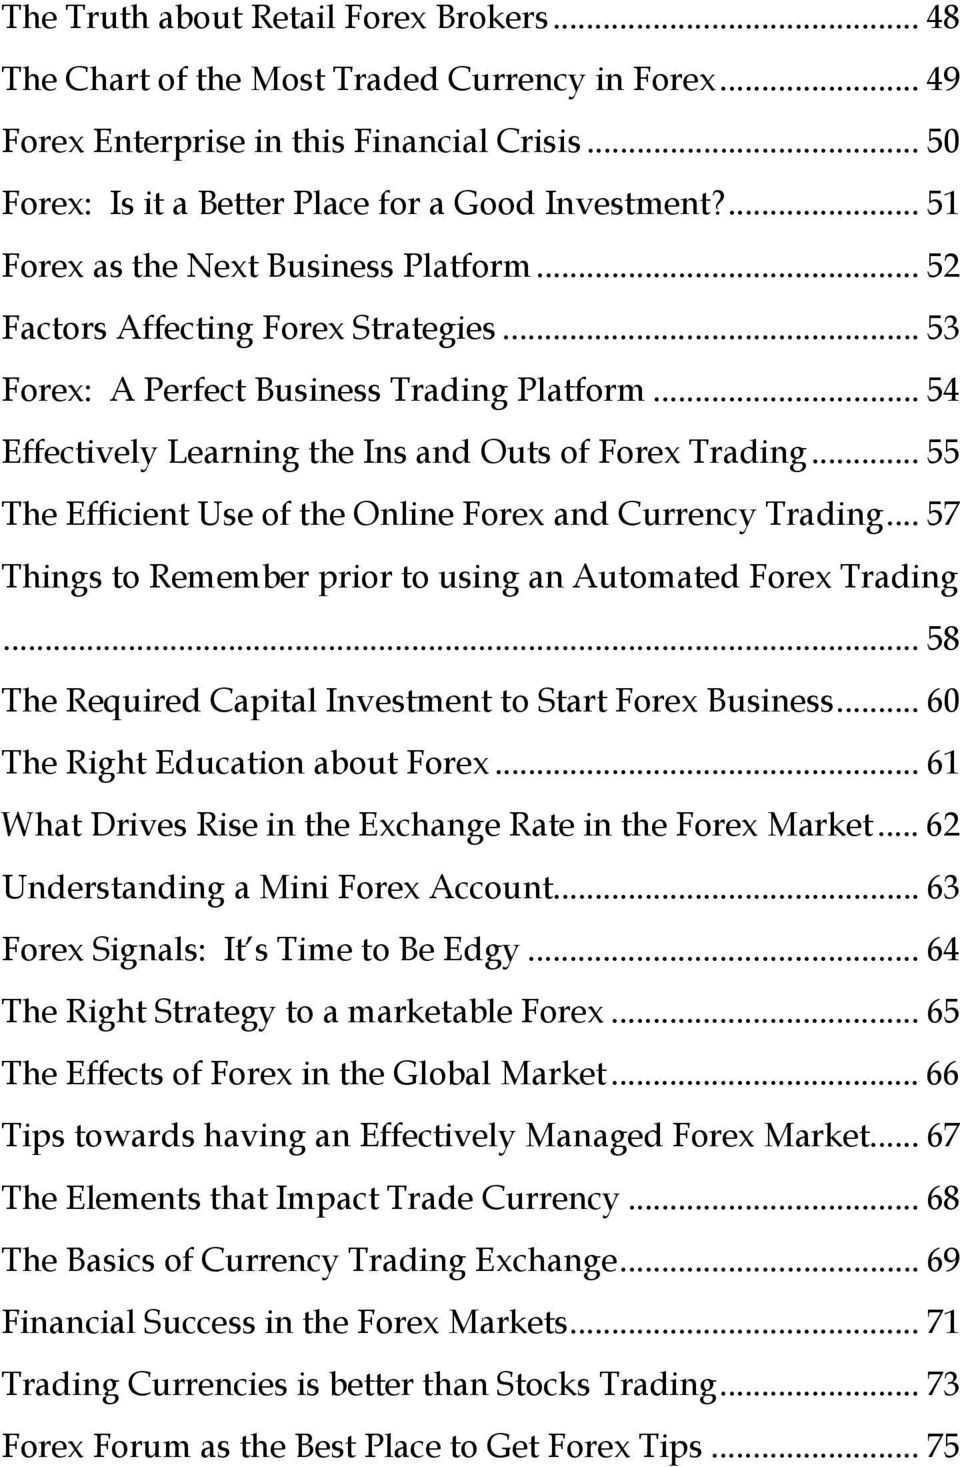 .. 55 The Efficient Use of the Online Forex and Currency Trading... 57 Things to Remember prior to using an Automated Forex Trading... 58 The Required Capital Investment to Start Forex Business.